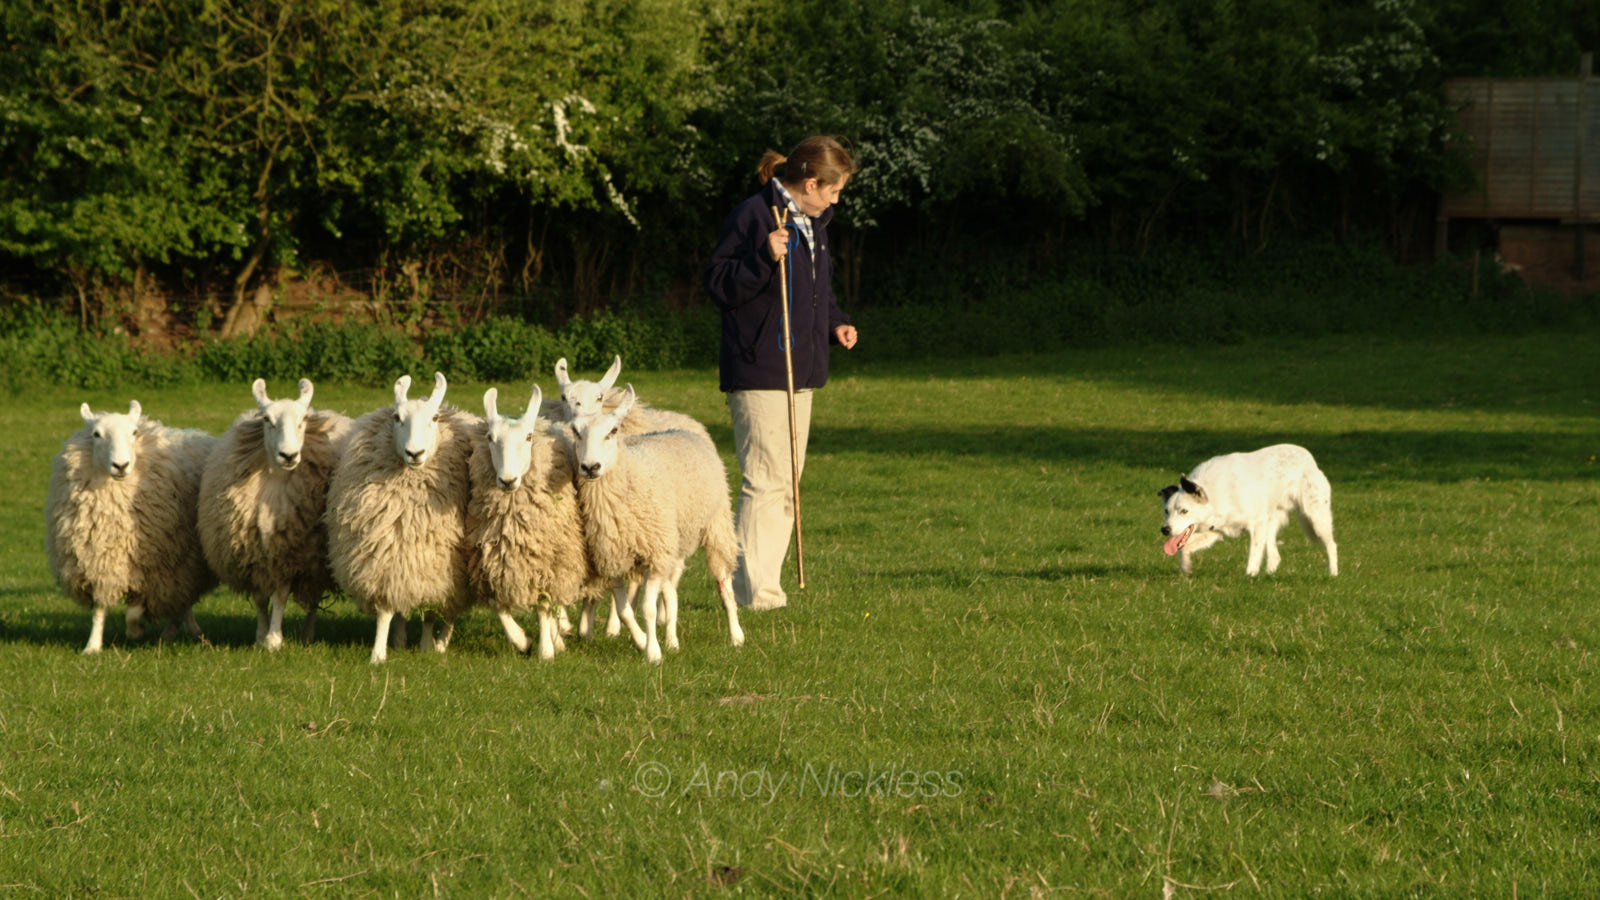 A predominantly white border collie sheepdog working a small bunch of sheep